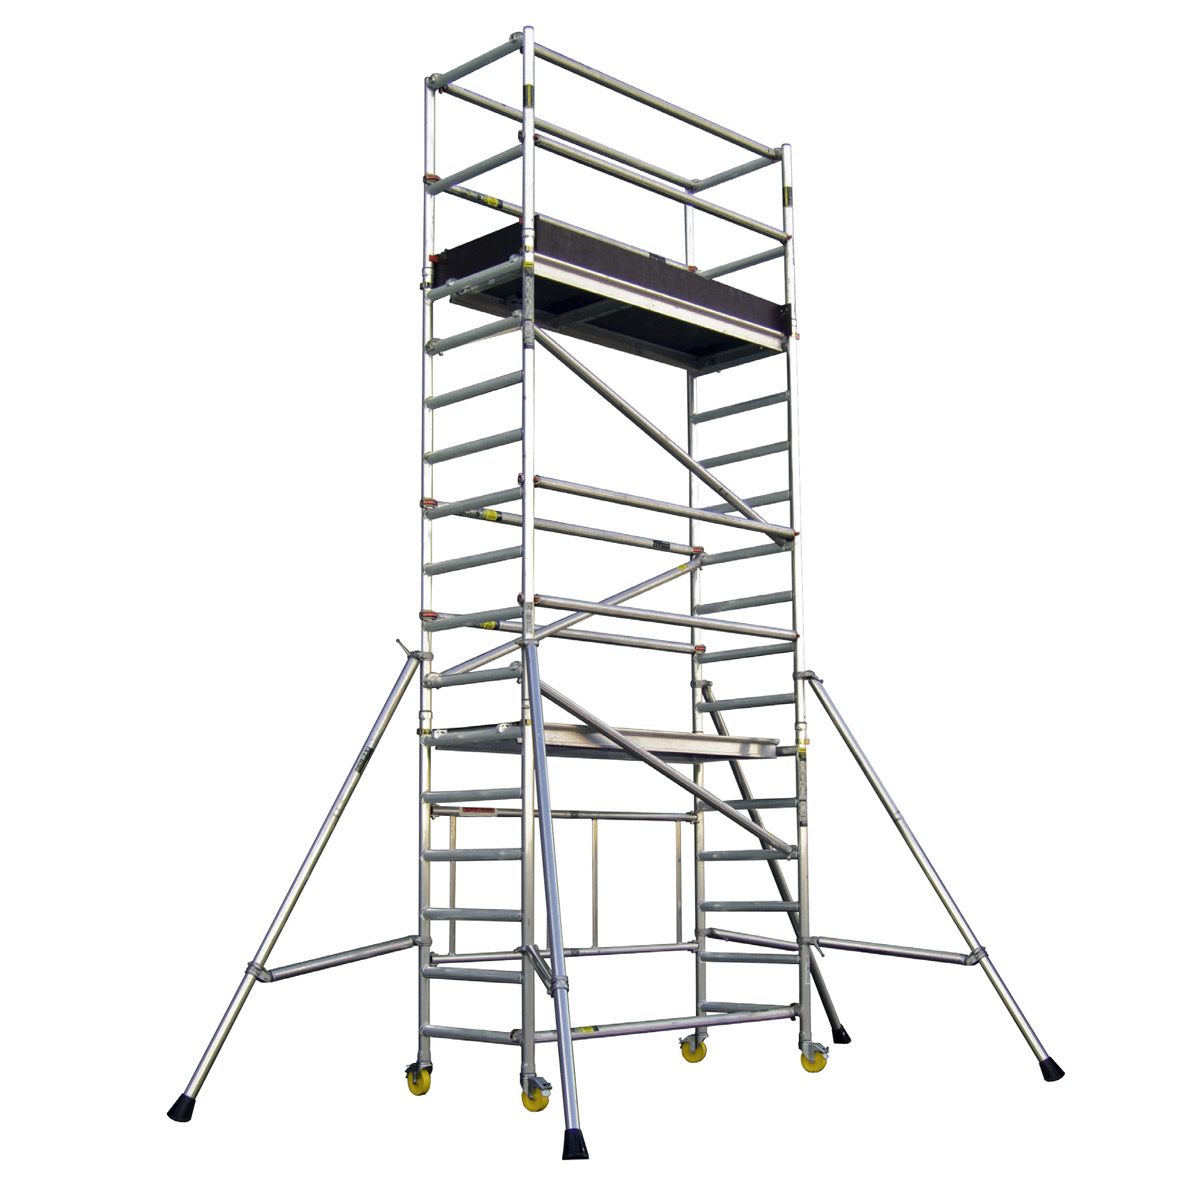 Aluminium Scaffolding - Working Height 5.8M ; Platform Height 3.8M;